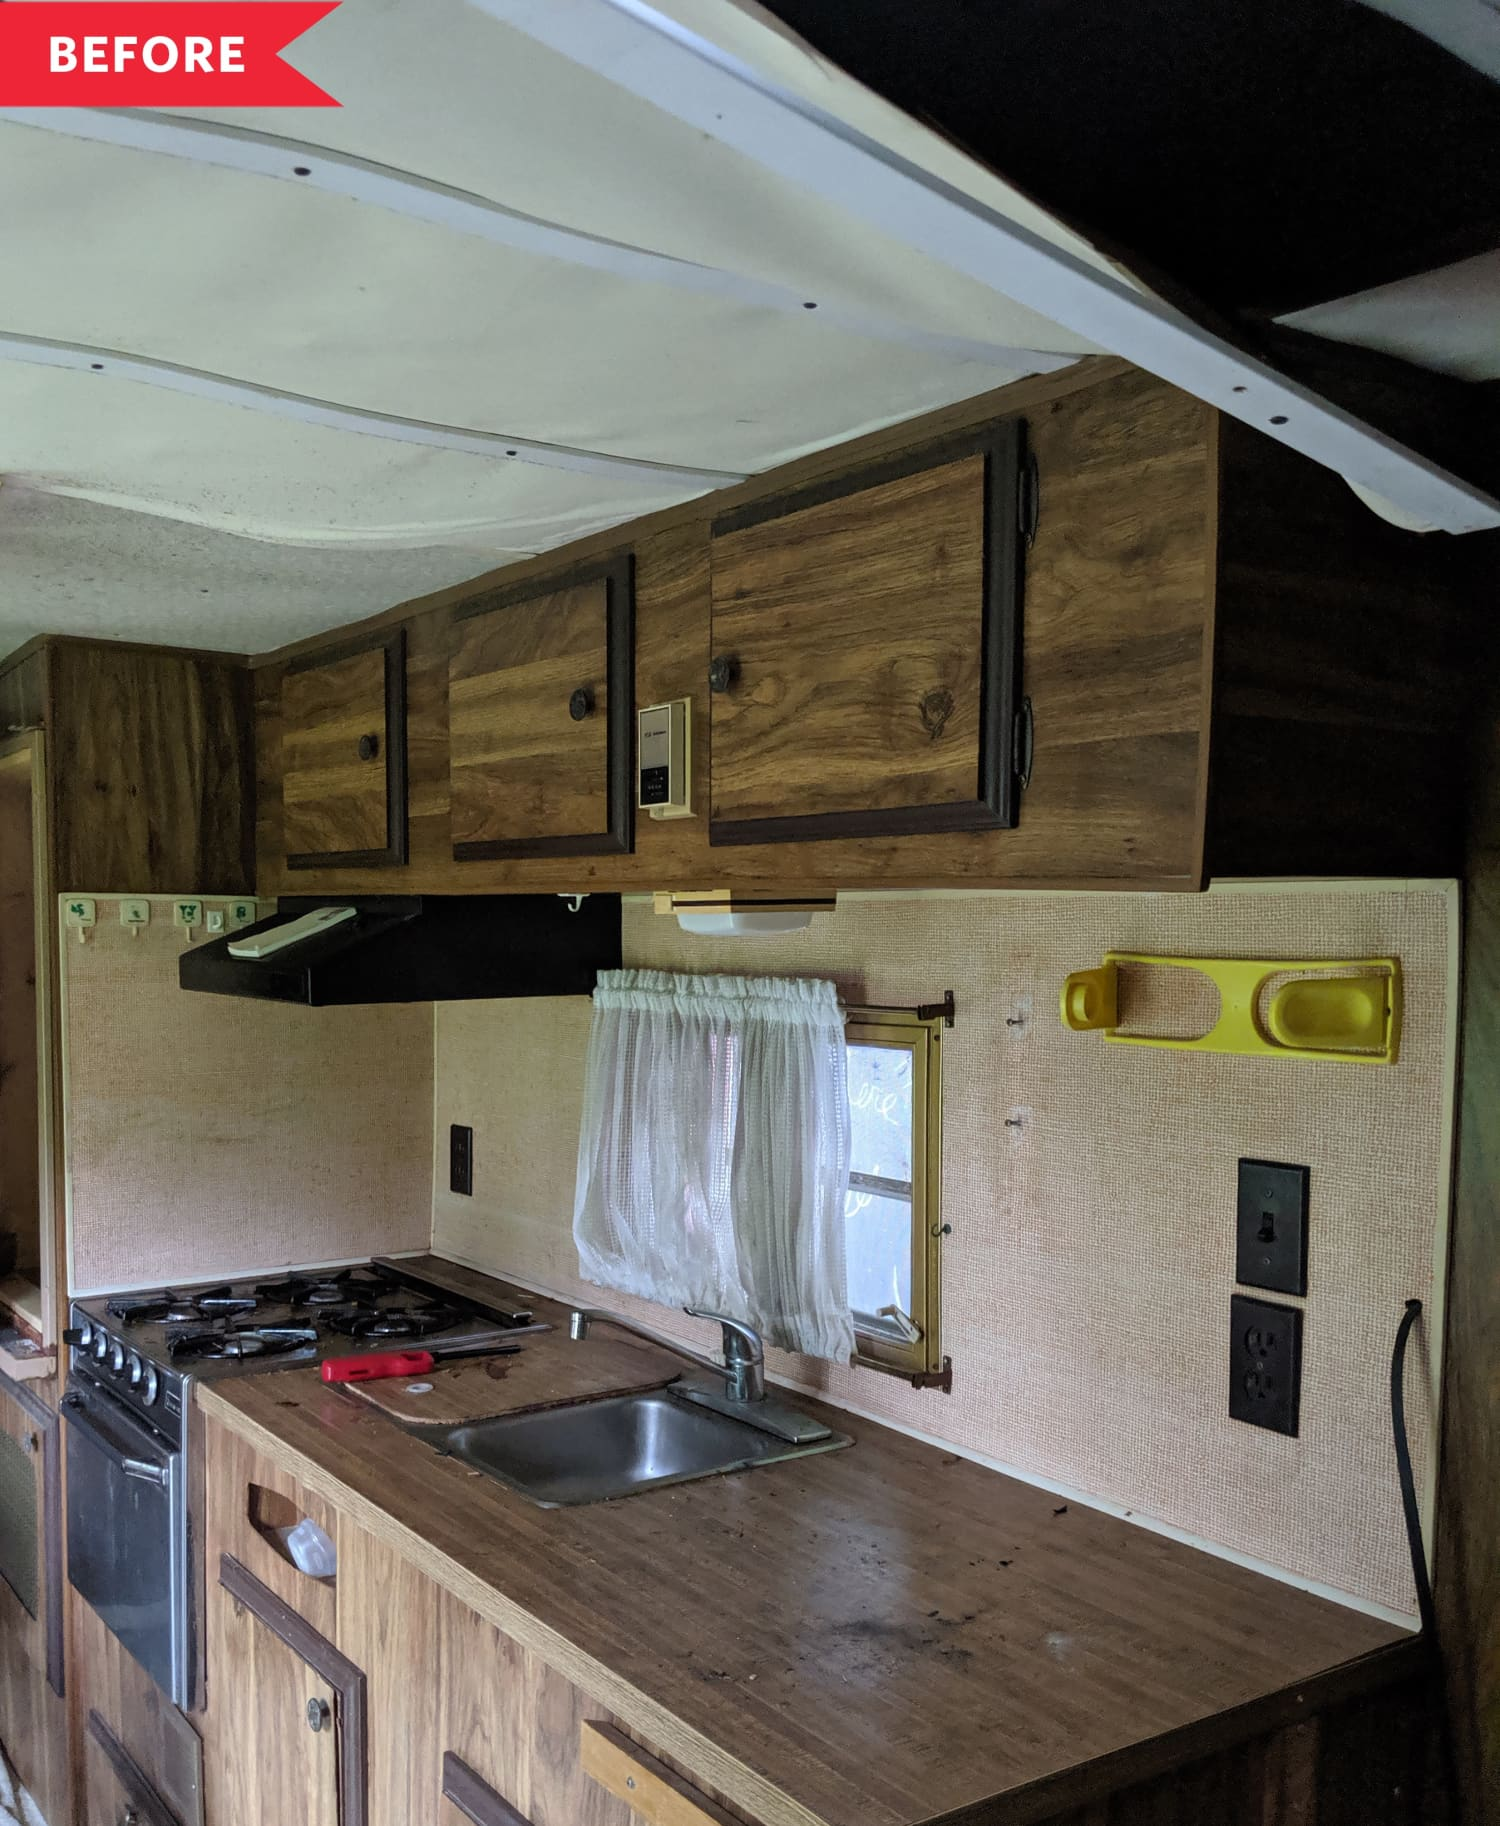 Before & After: We Can't Believe This Incredible RV Makeover Cost Just $500